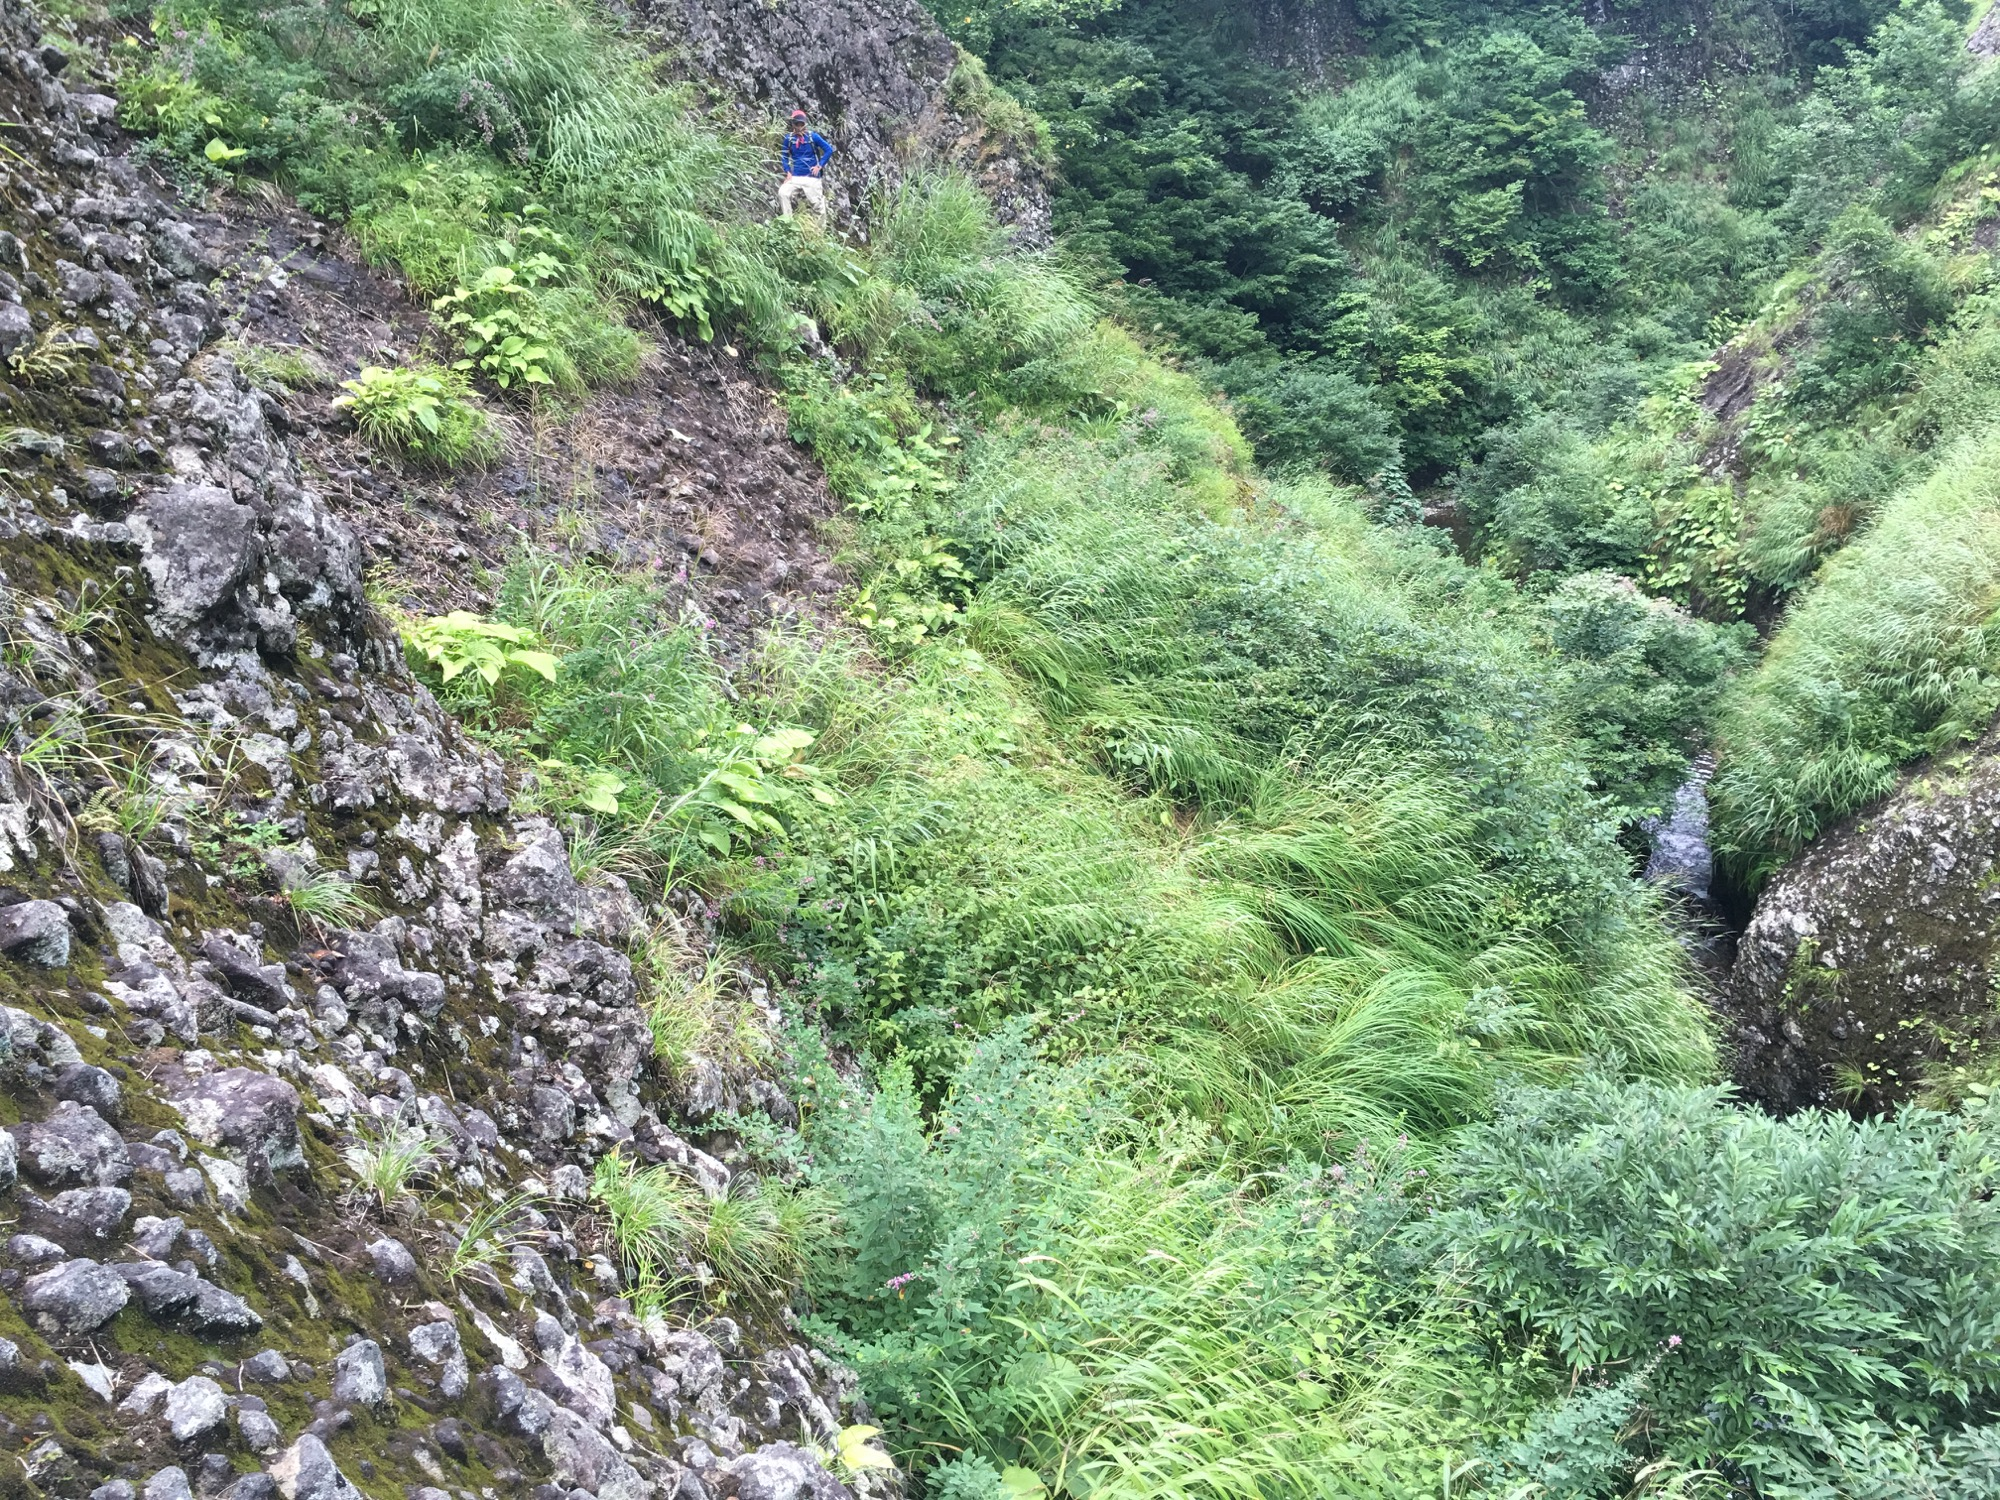 Class V climb to get above the waterfall.